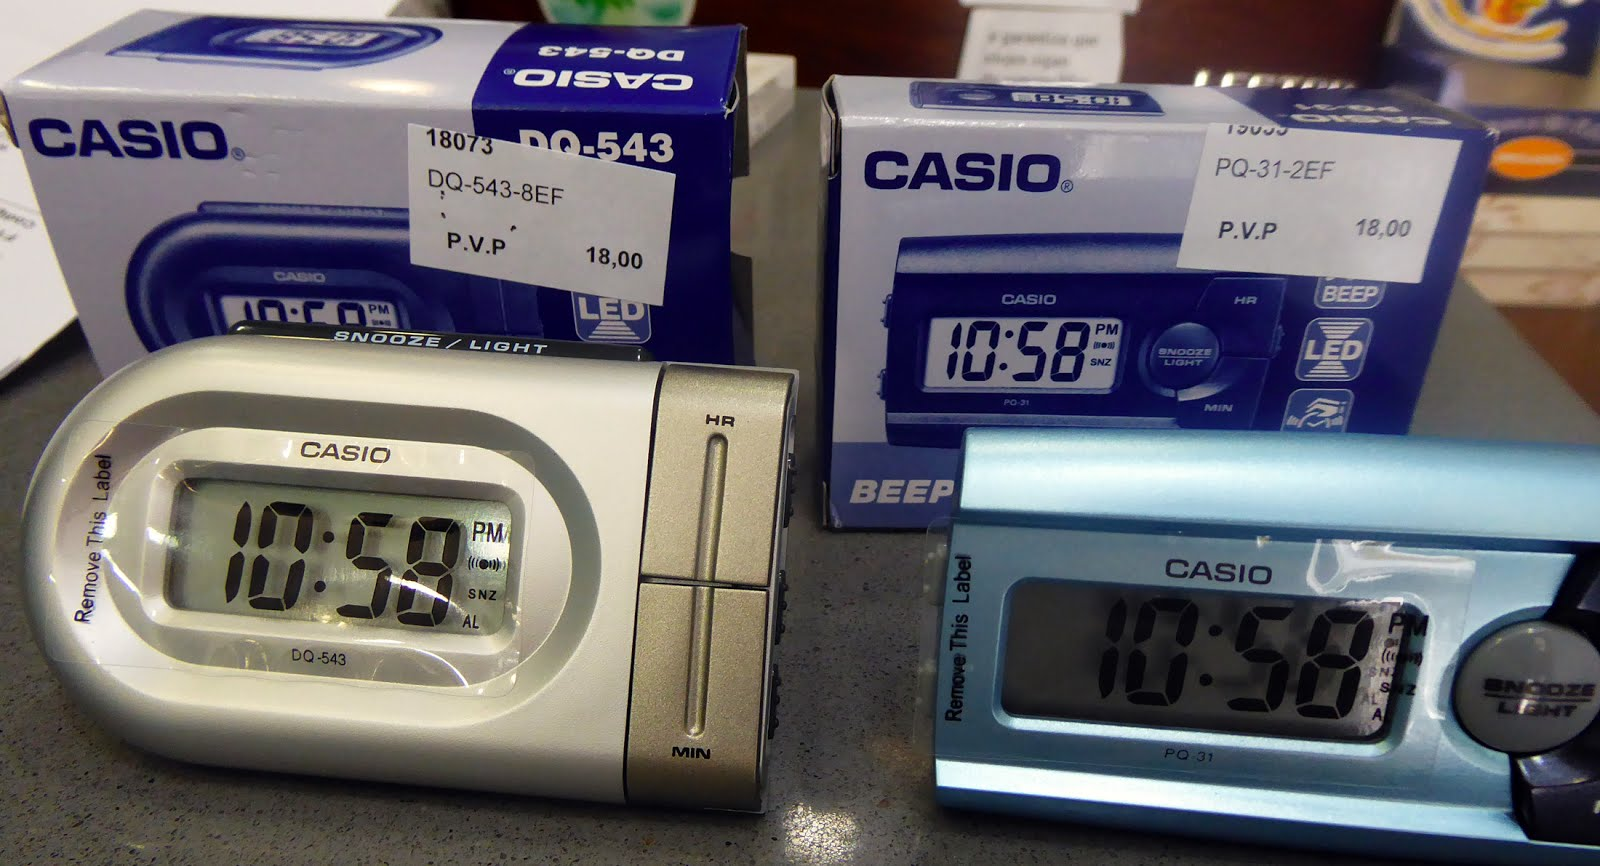 Despertadores digitales Casio